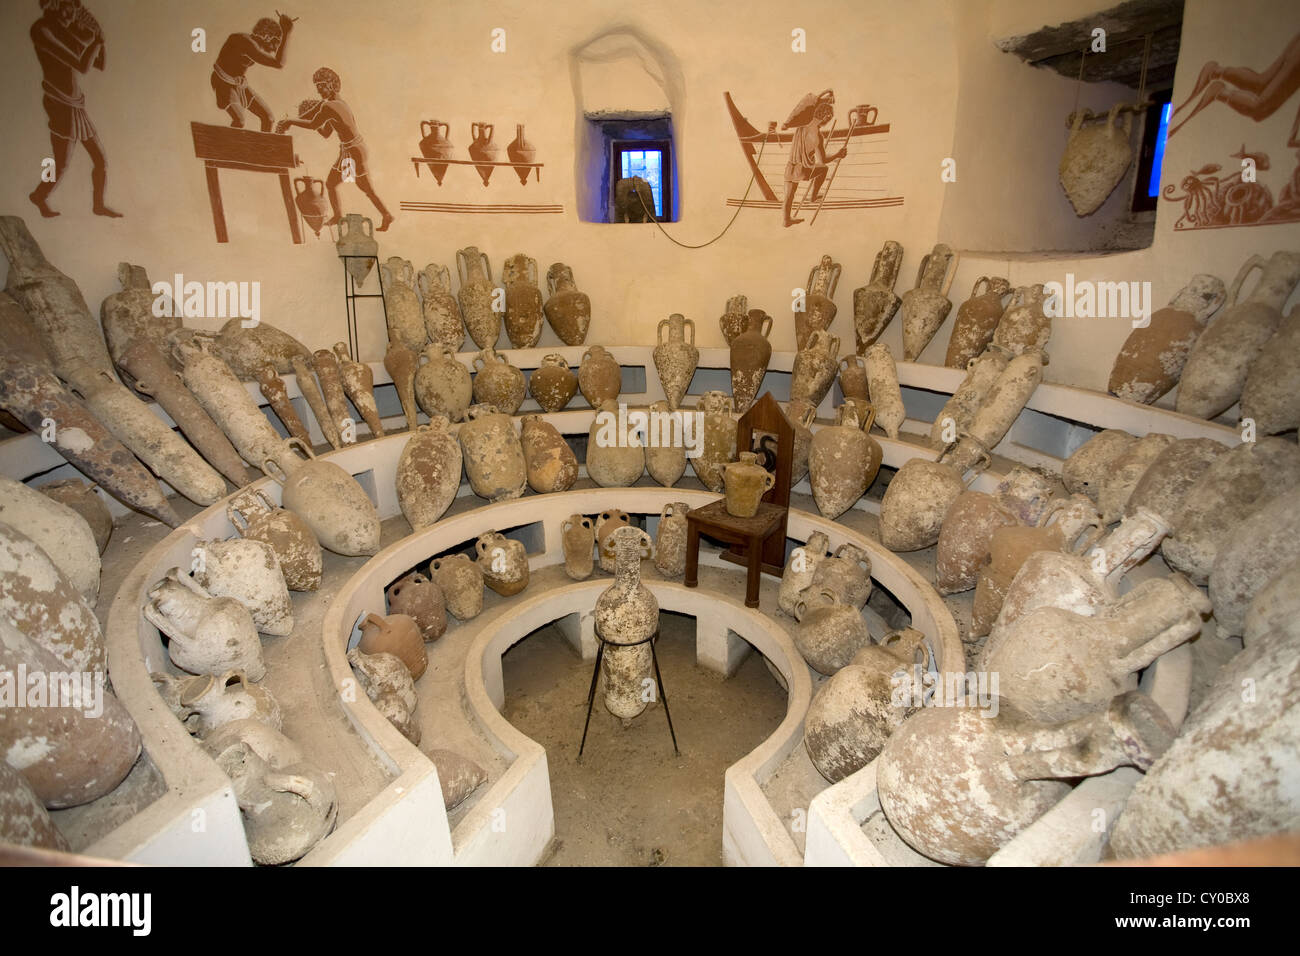 Amphorae, findings from the Aegaen Sea, Museum of Underwater Archaeology, in the crusader castle of St. Peter, Bodrum, - Stock Image